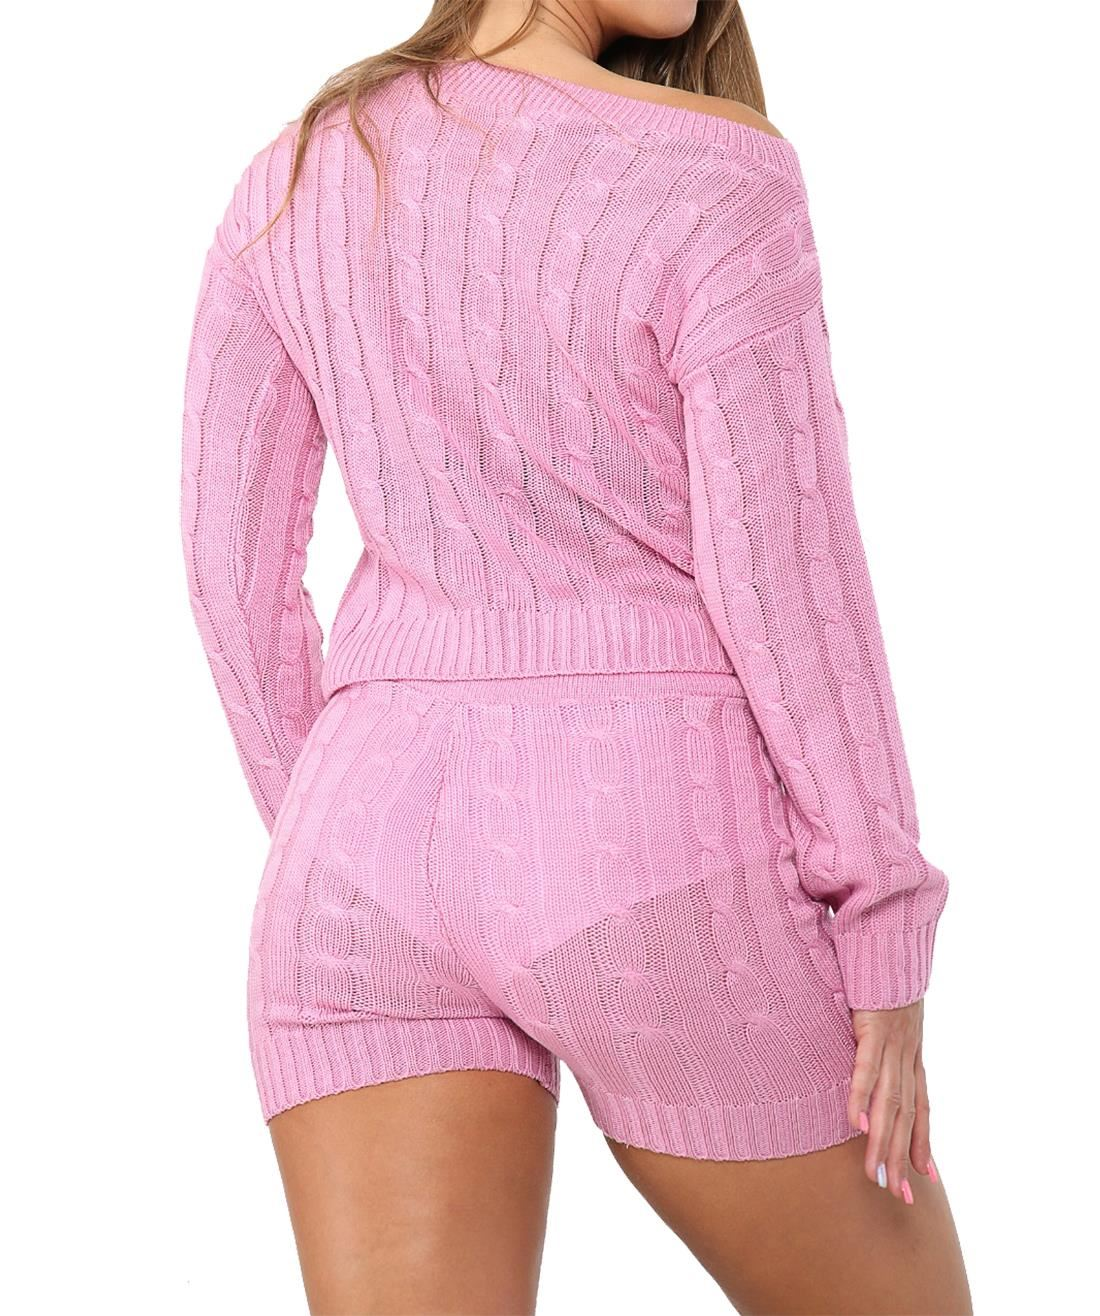 Details about  /Ladies 2Pcs Knitted Loungewear Womens Casual Wear Jumper and Shorts Co-Ord Set